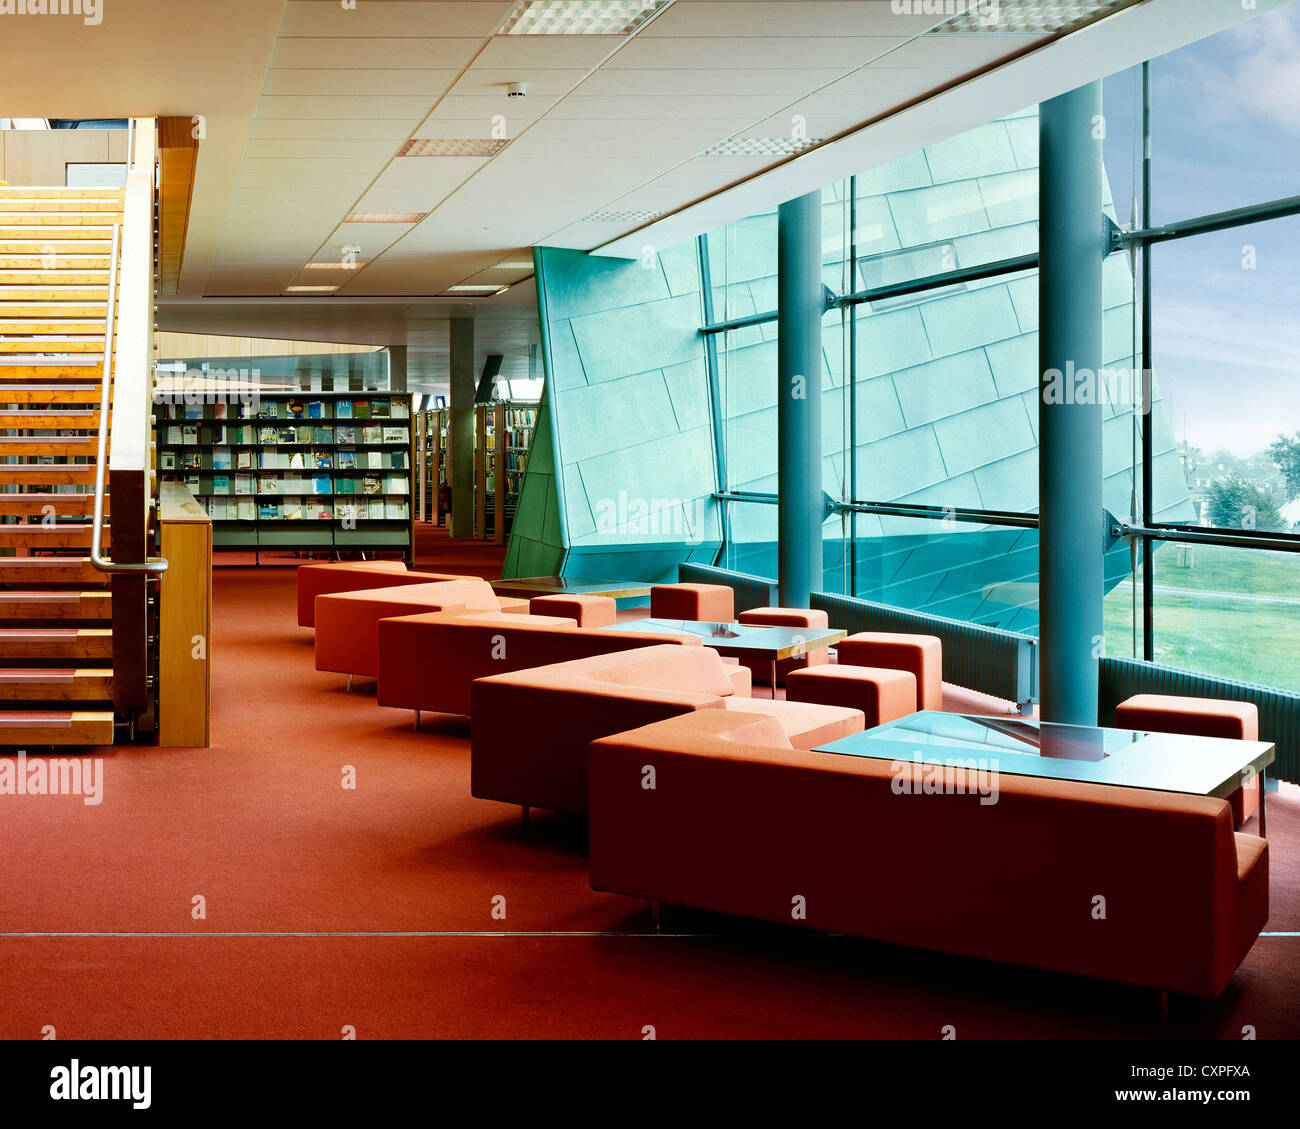 83 Interior Design Courses Mayo Mayo Clinic Case Study Modern Country House Co Photo Of